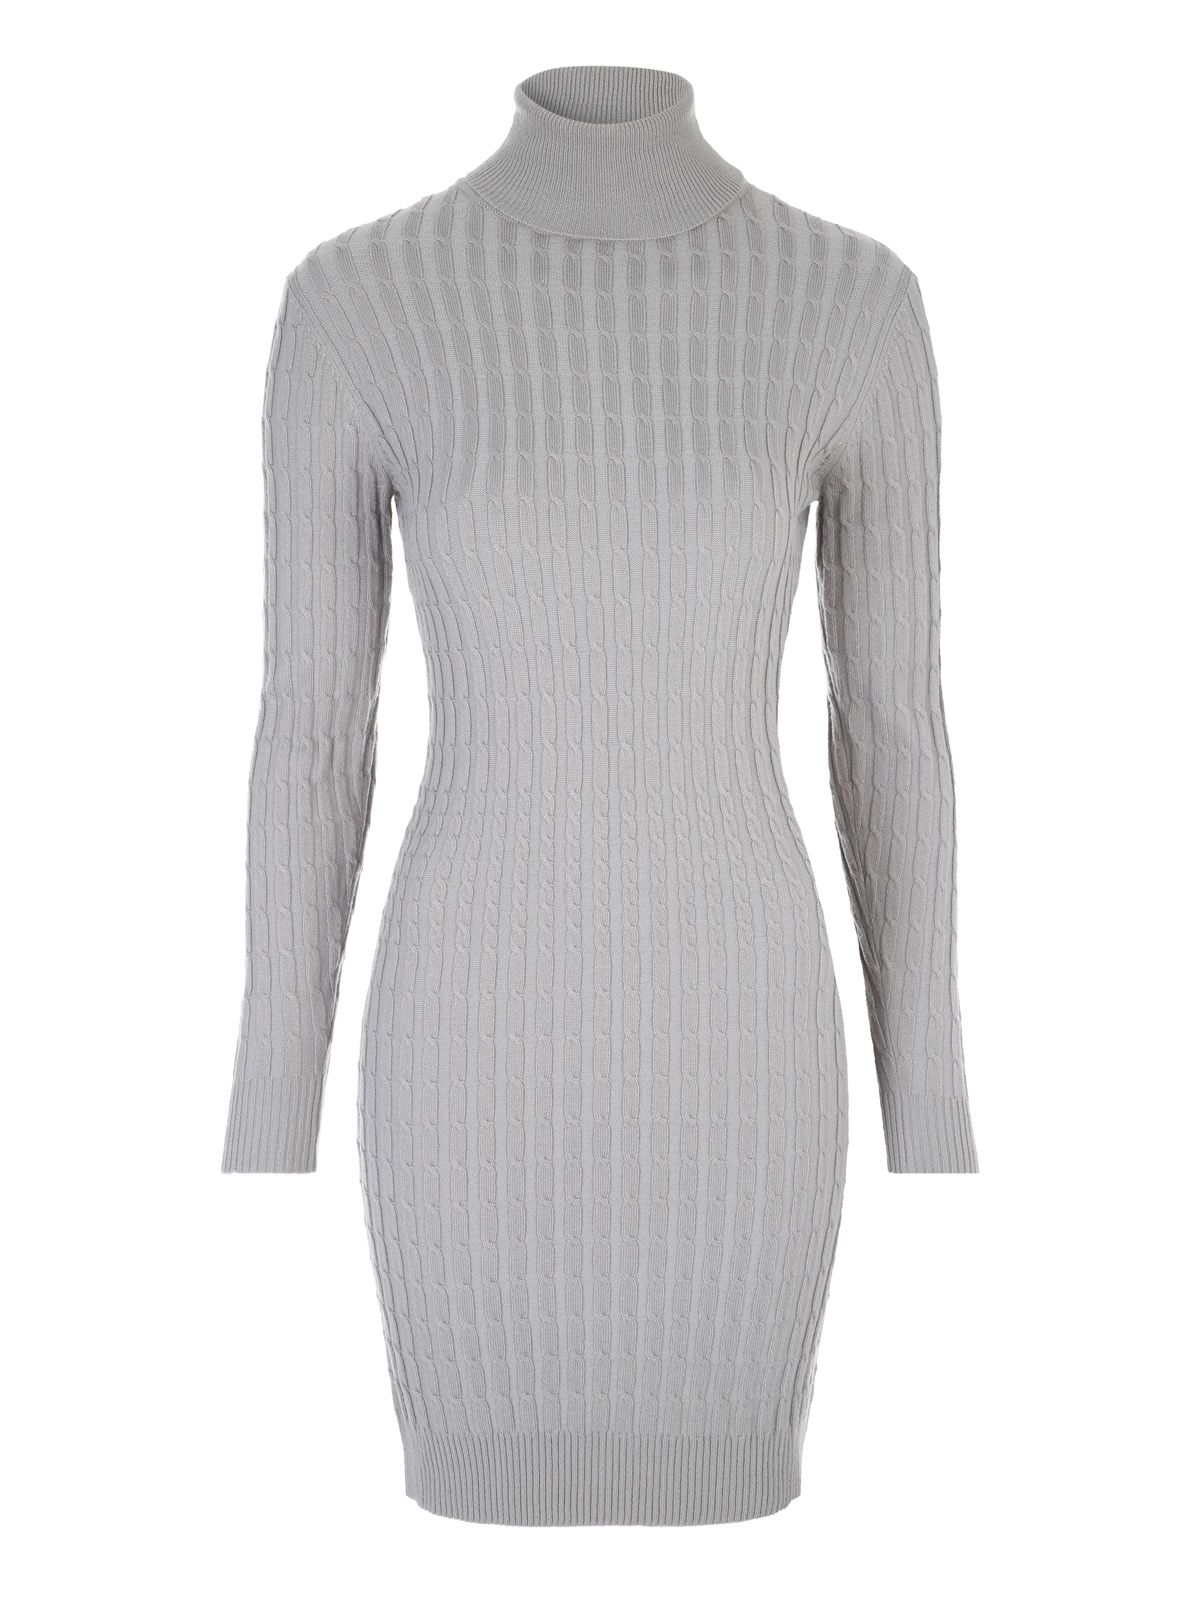 Jane Norman Grey High Neck Jumper Dress Grey